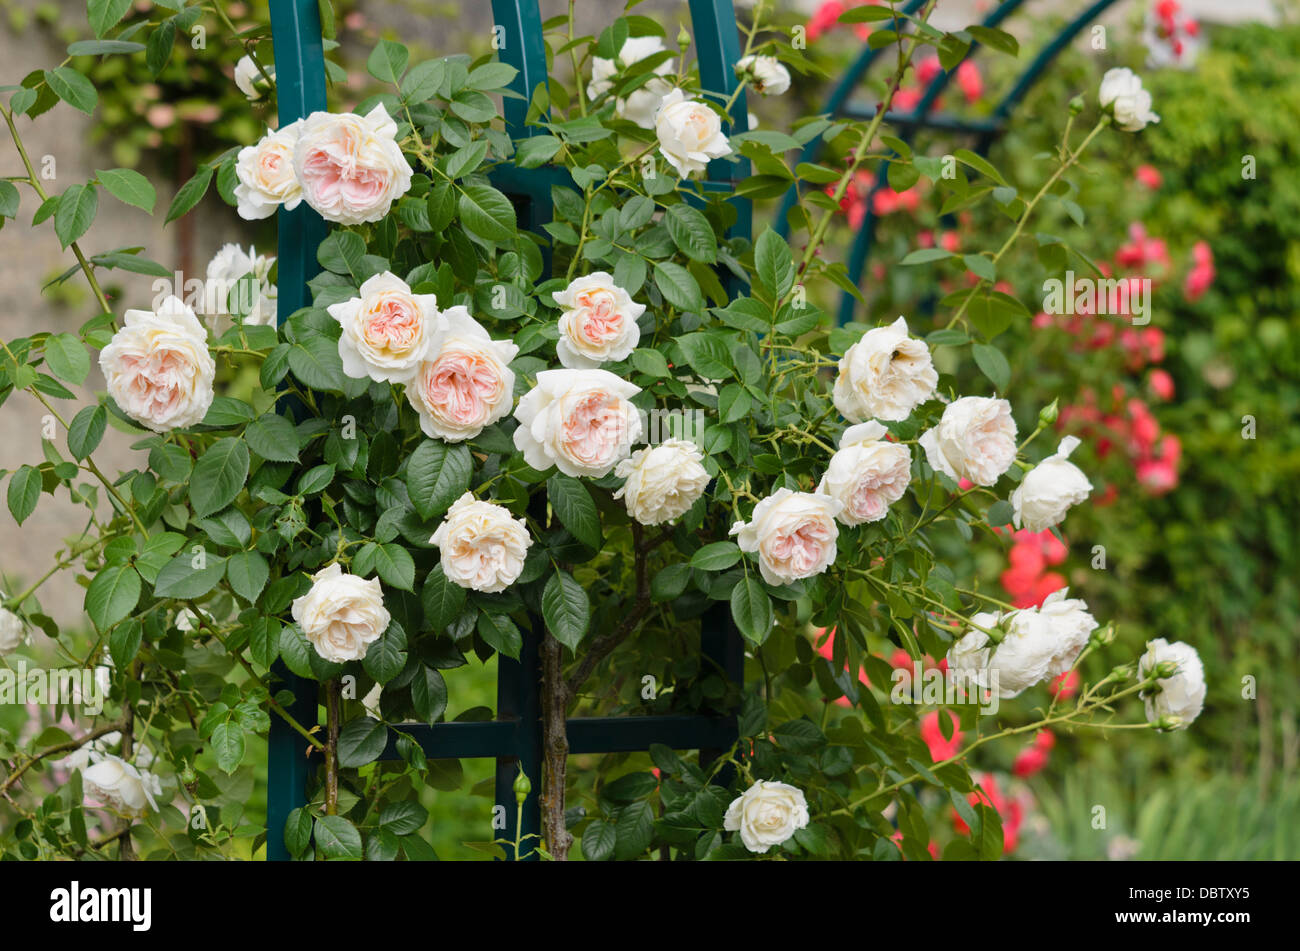 climbing rose rosa mon jardin et ma maison stock photo royalty free image 58940313 alamy. Black Bedroom Furniture Sets. Home Design Ideas